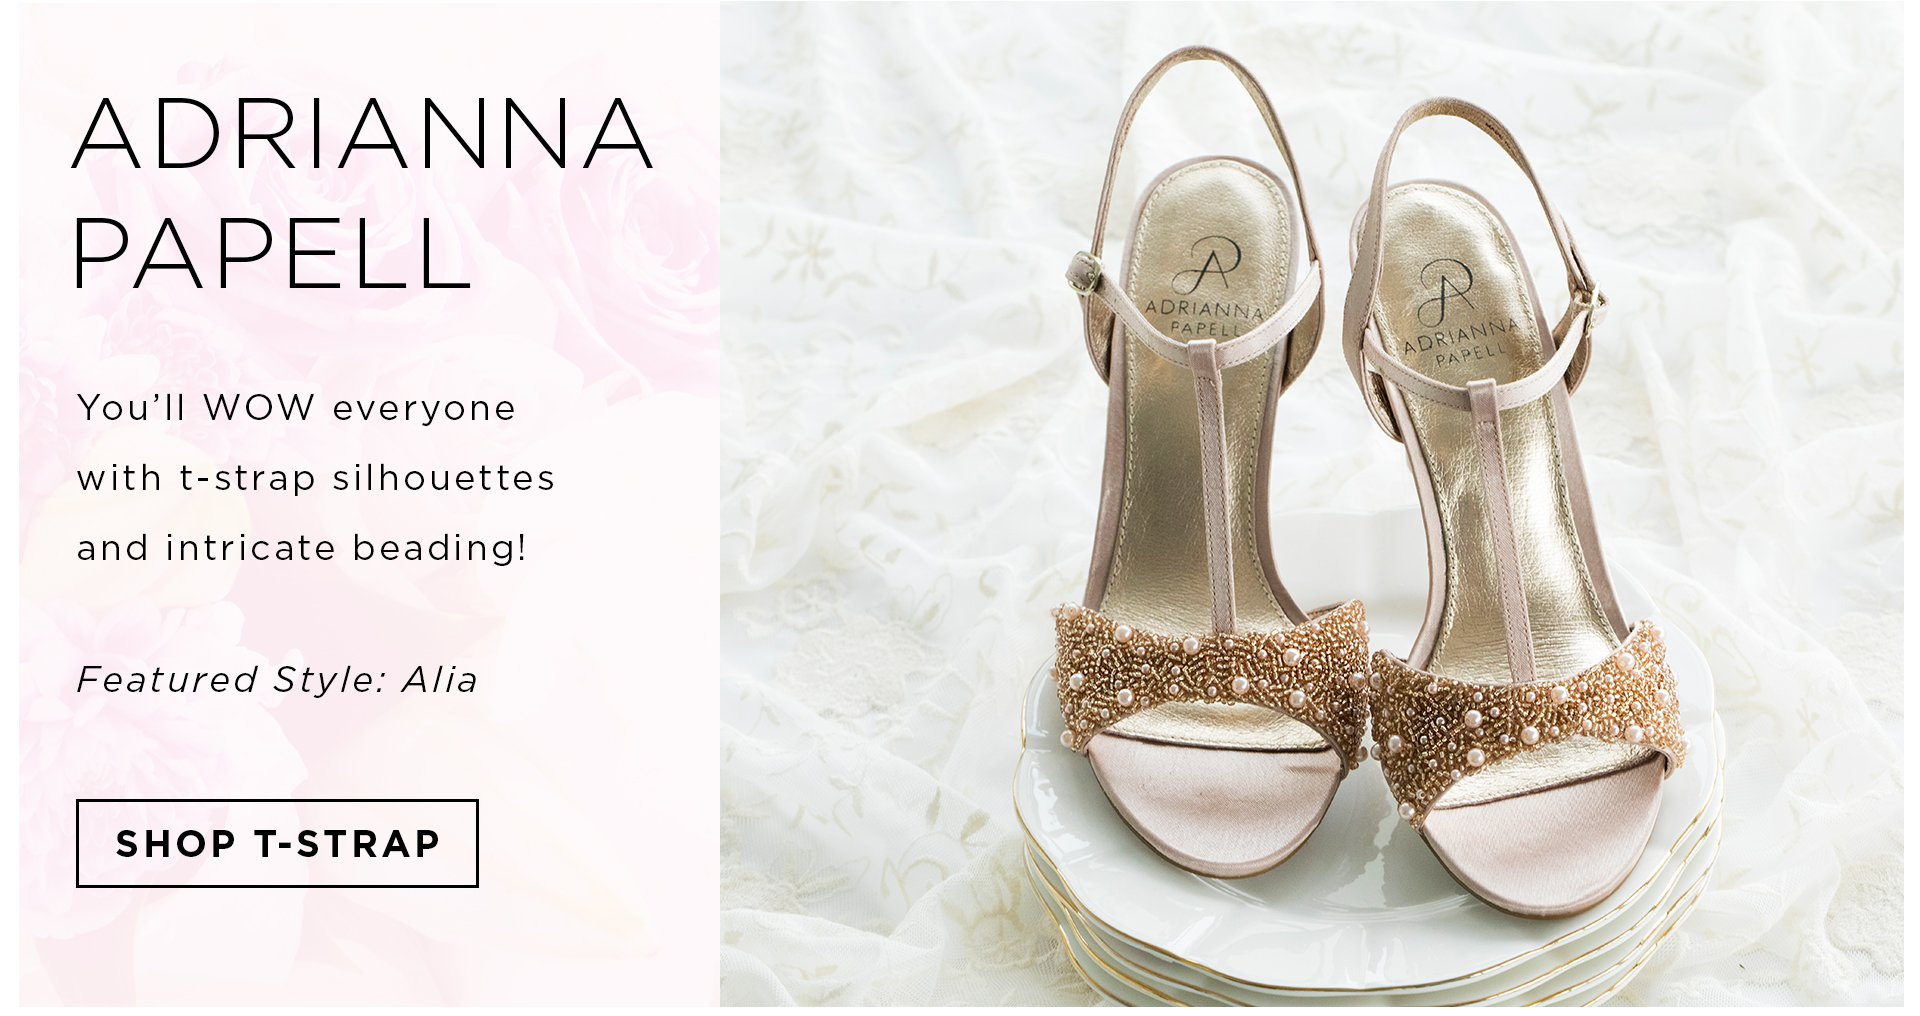 Header Wedding Footwear Favorites Badgley Mischka Shop Nina Adrianna Papell